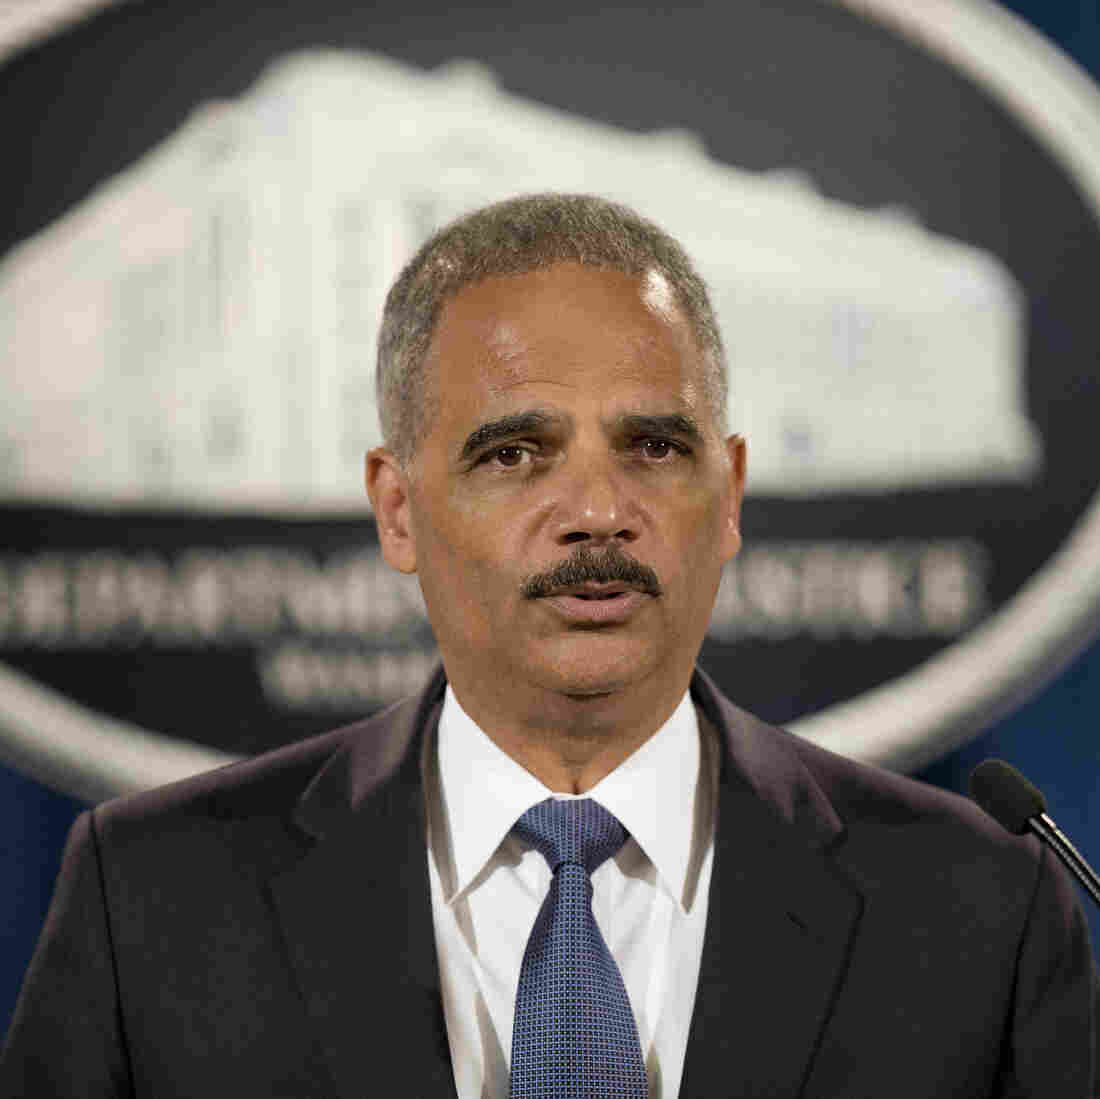 Holder Calls For Calm As Ferguson Grand Jury Decision Looms